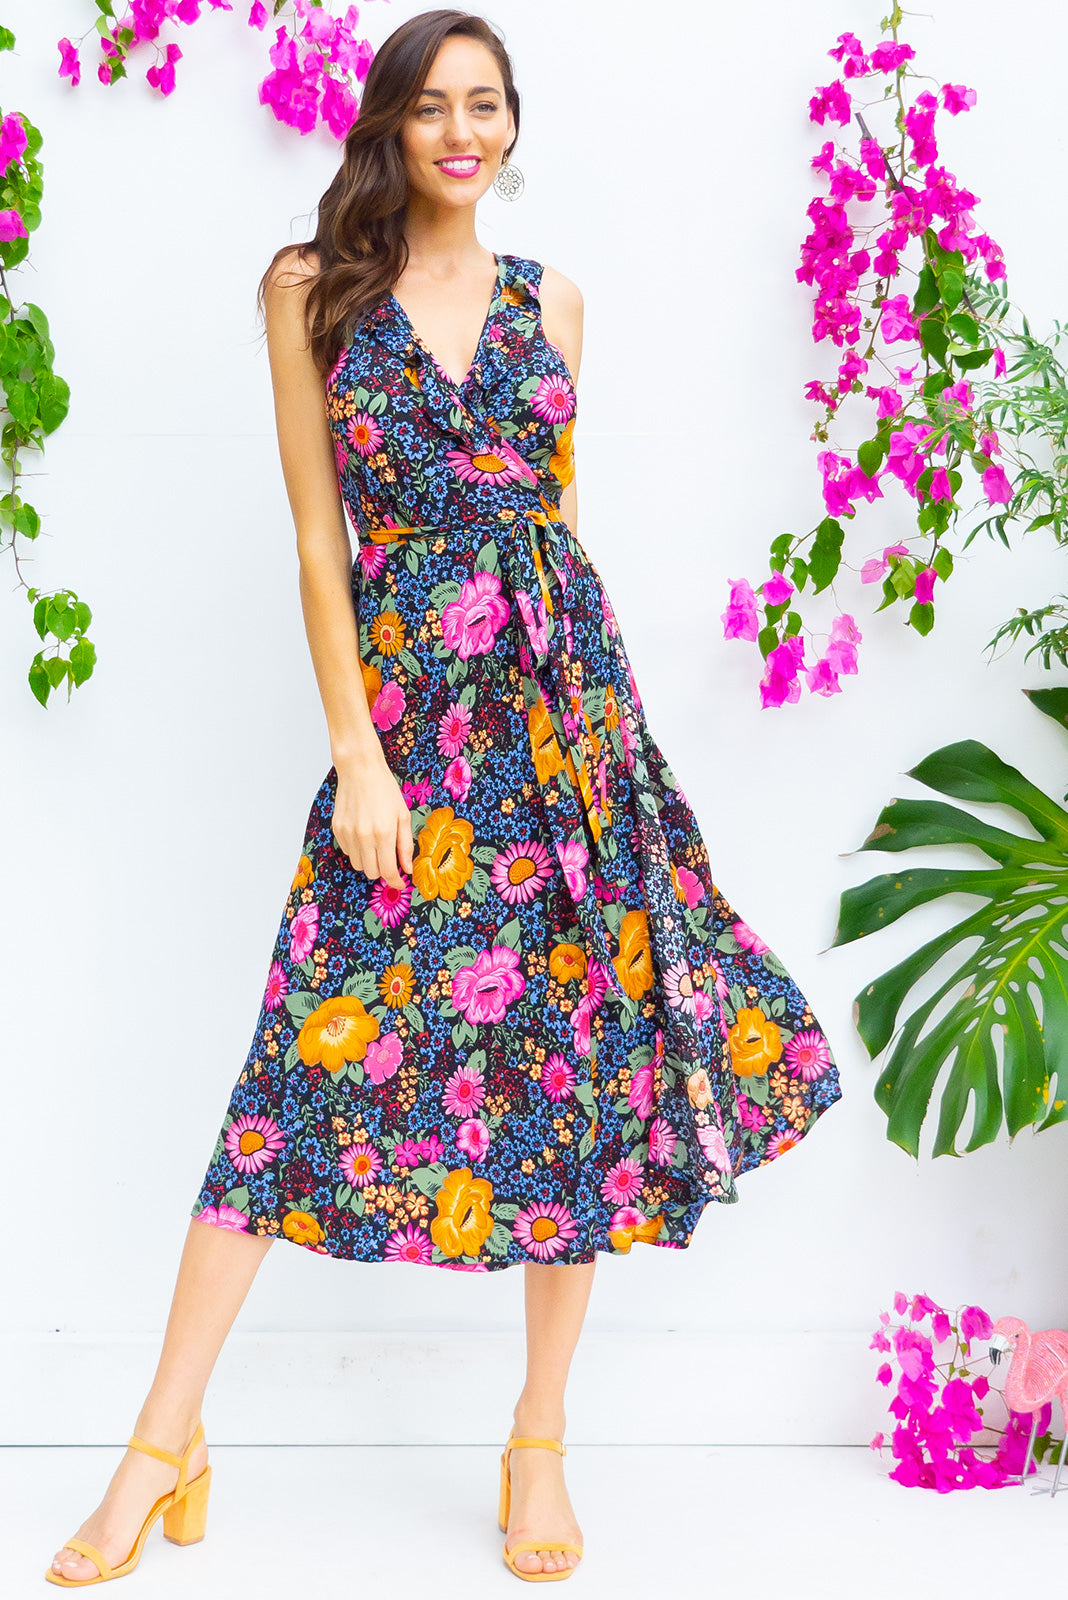 Pablo Night Blooms Midi Wrap Dress features a flattering wrap around shape, sleeveless bodice with a frill and comes in a bright dark floral print with a black base on 100% rayon